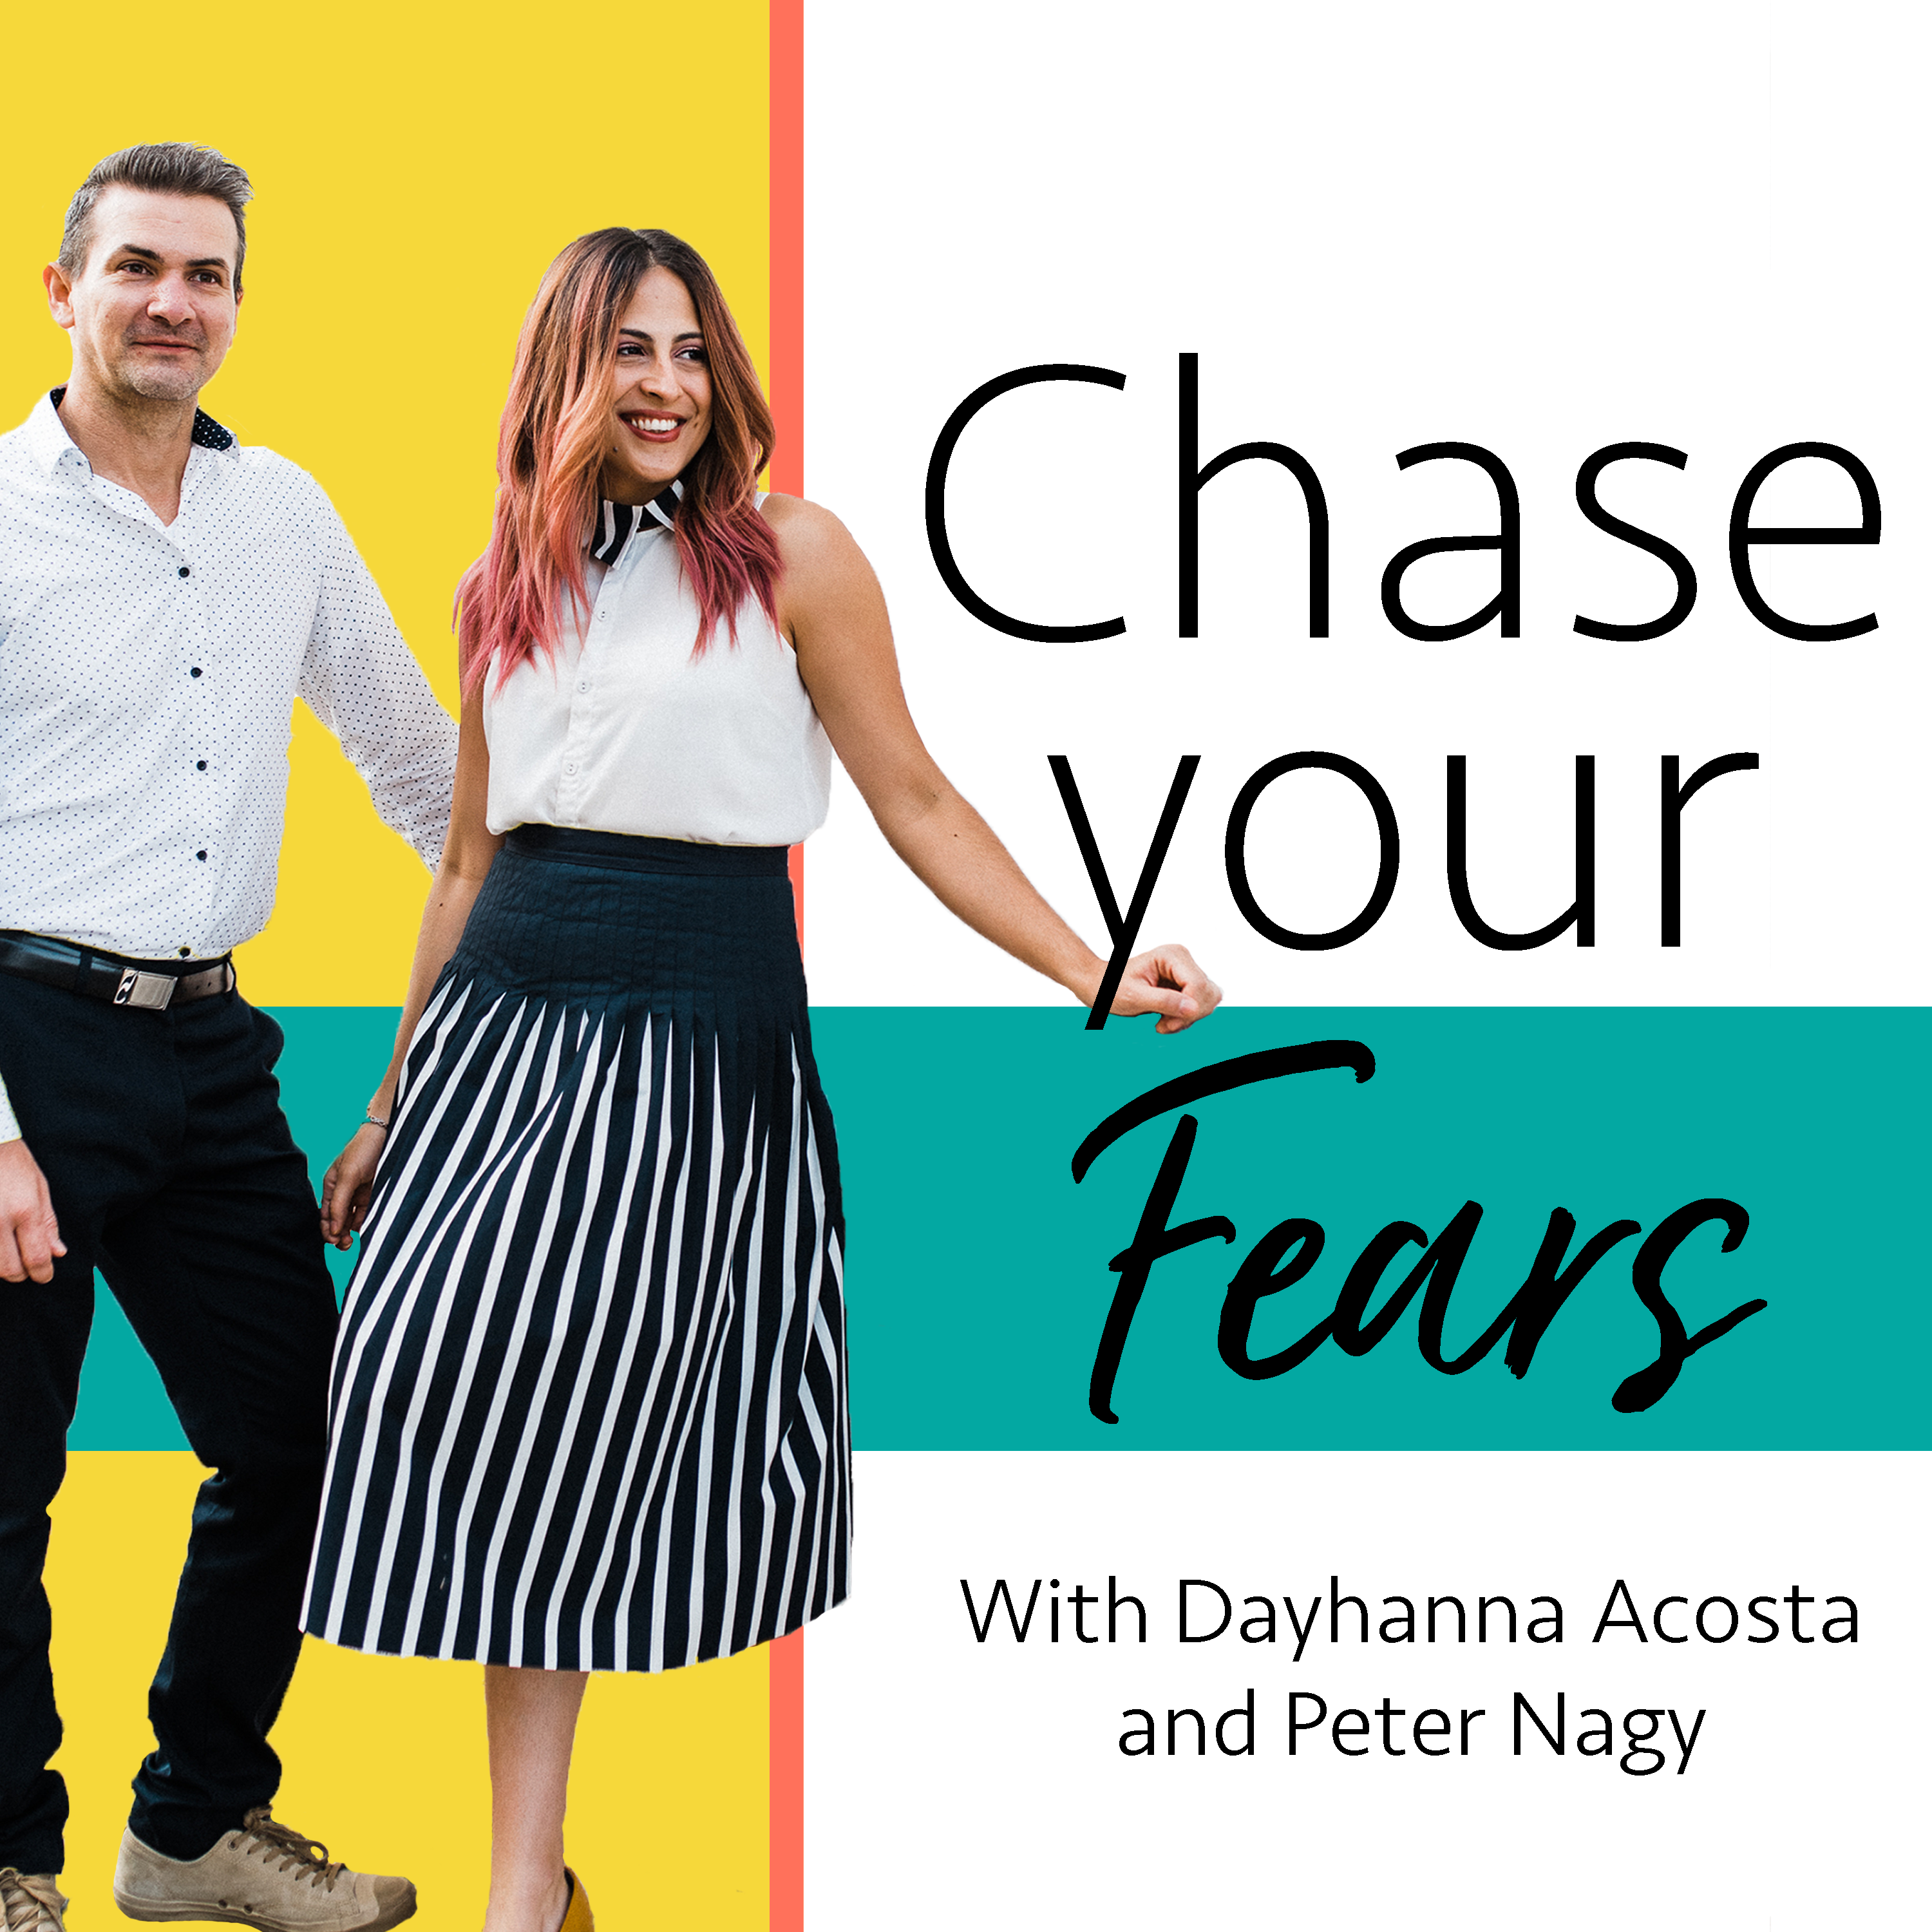 Chase Your Fears Podcast: Personal Development | Creative Entrepreneurship | Motivation | Self-Help | Marketing and Business Strategy show art